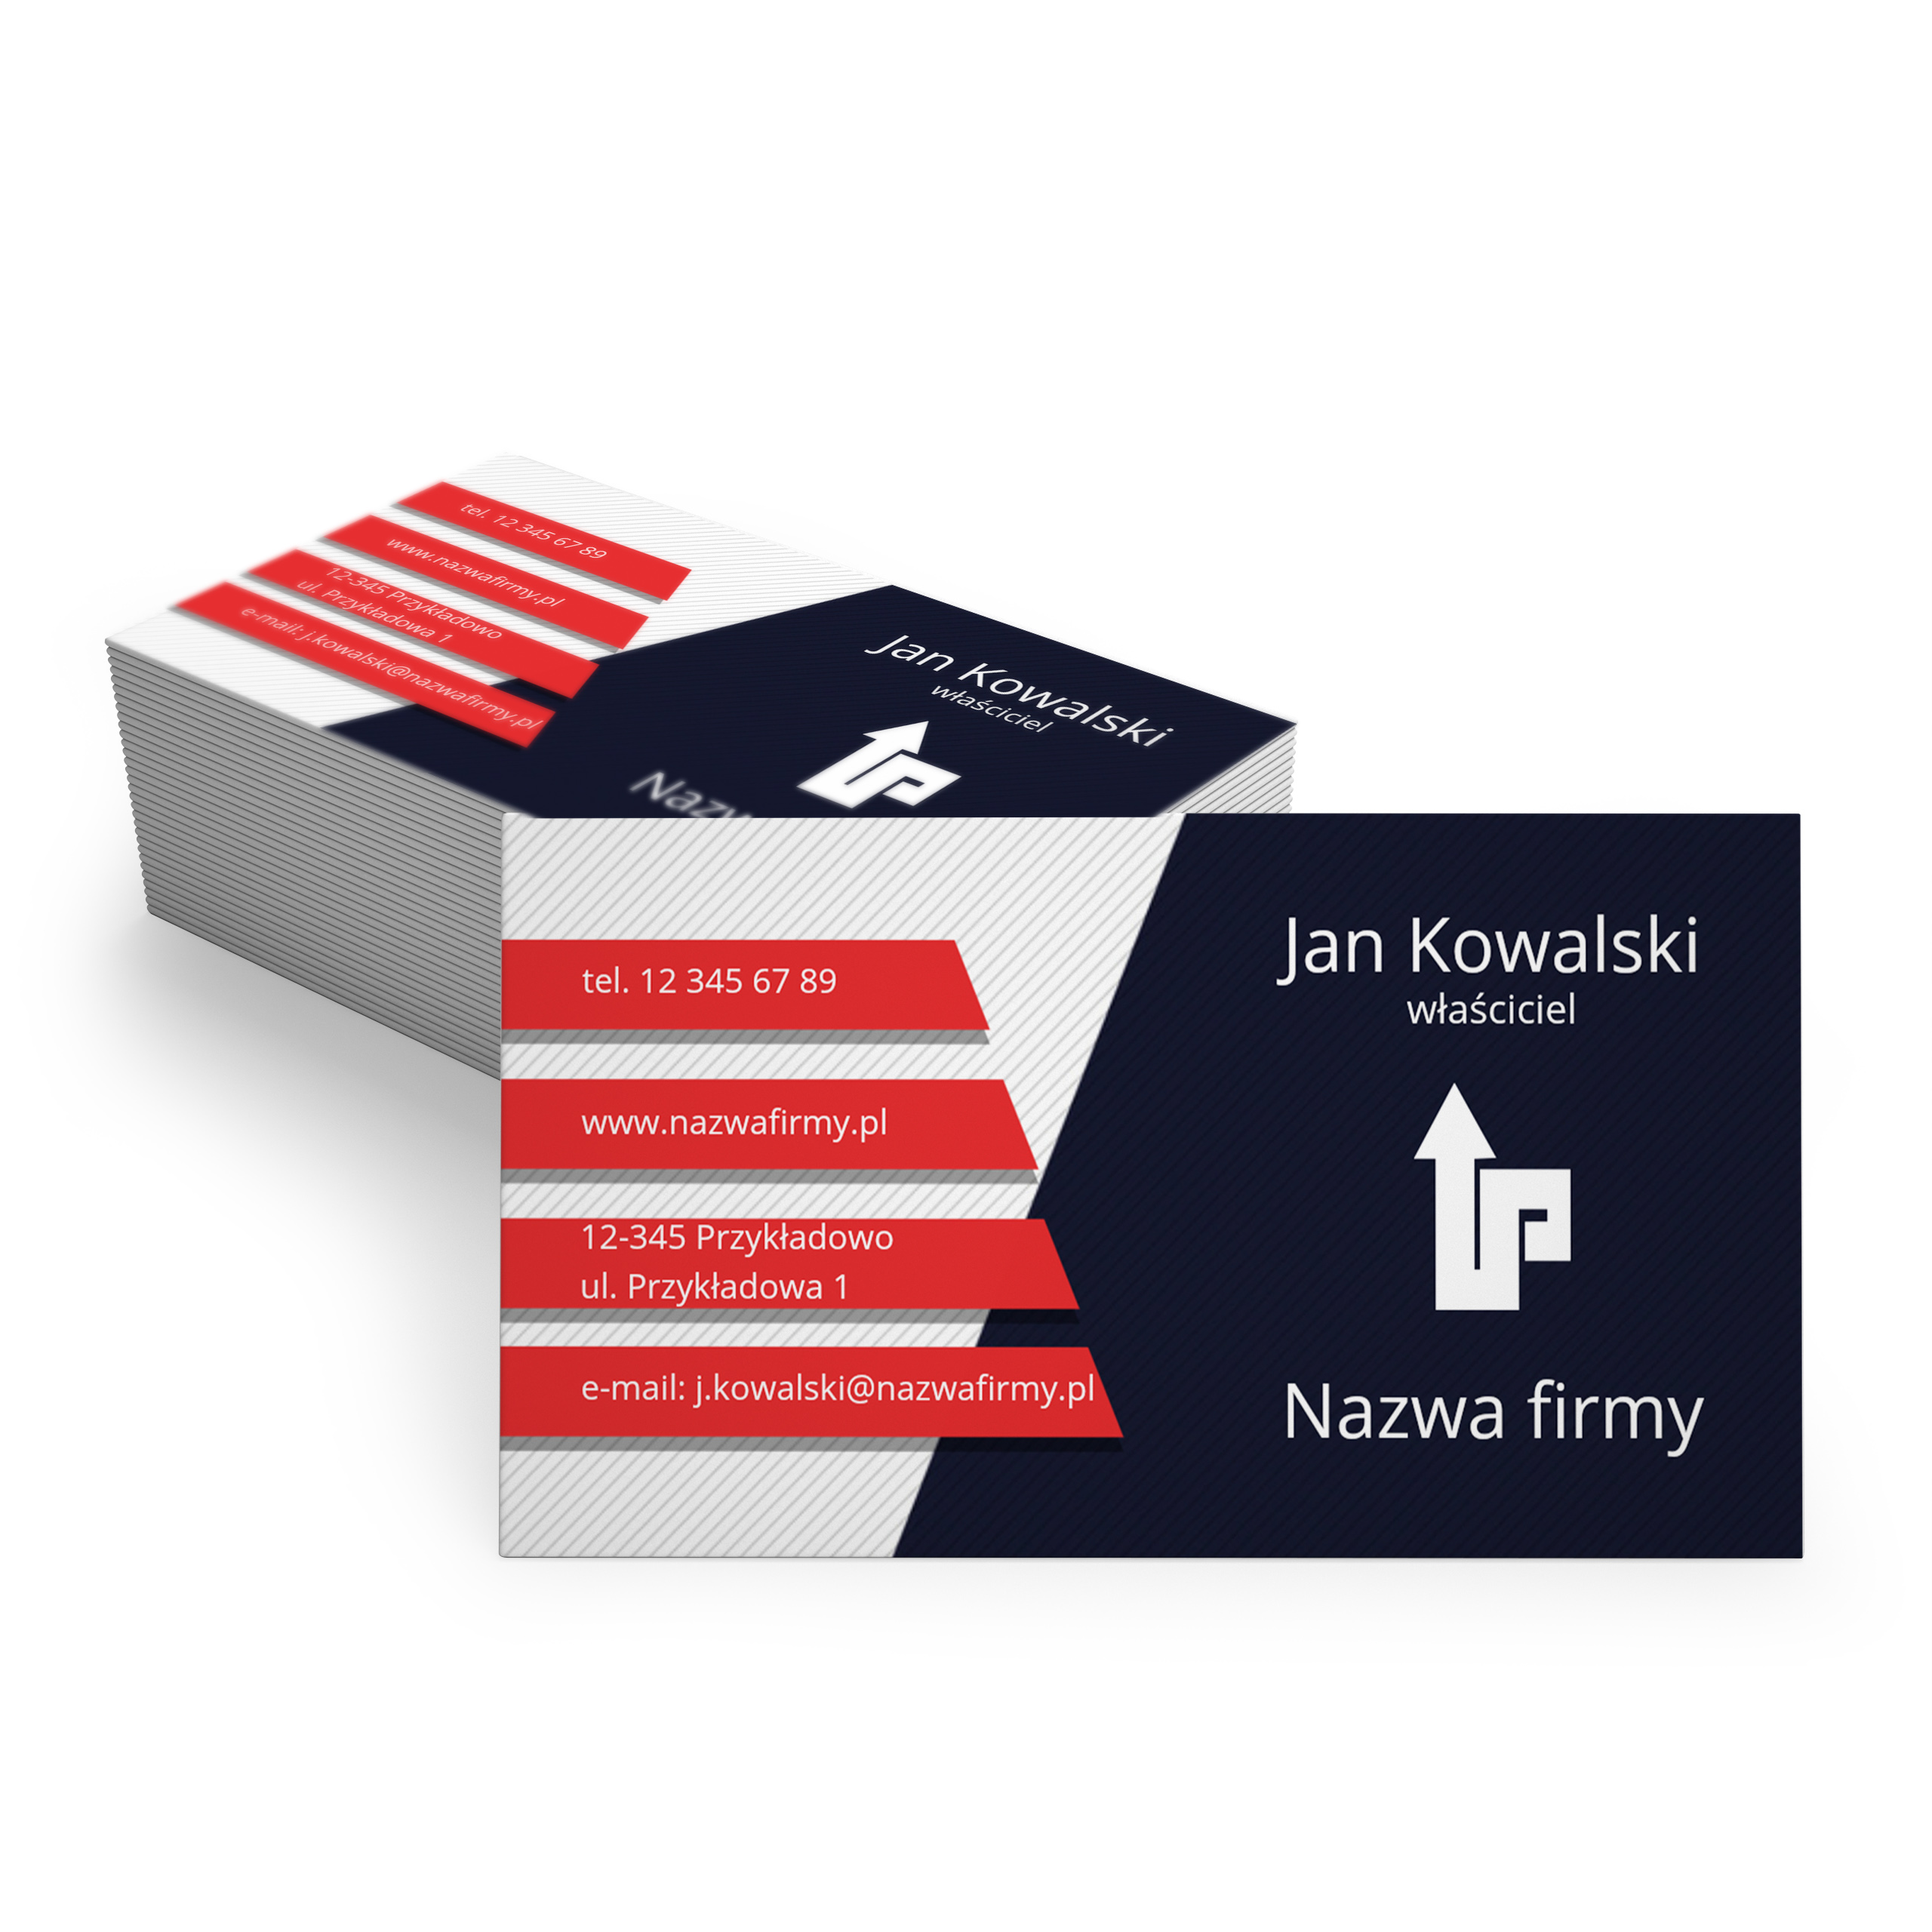 Item Business cards double-sided 1000 pieces of READY-made TEMPLATES